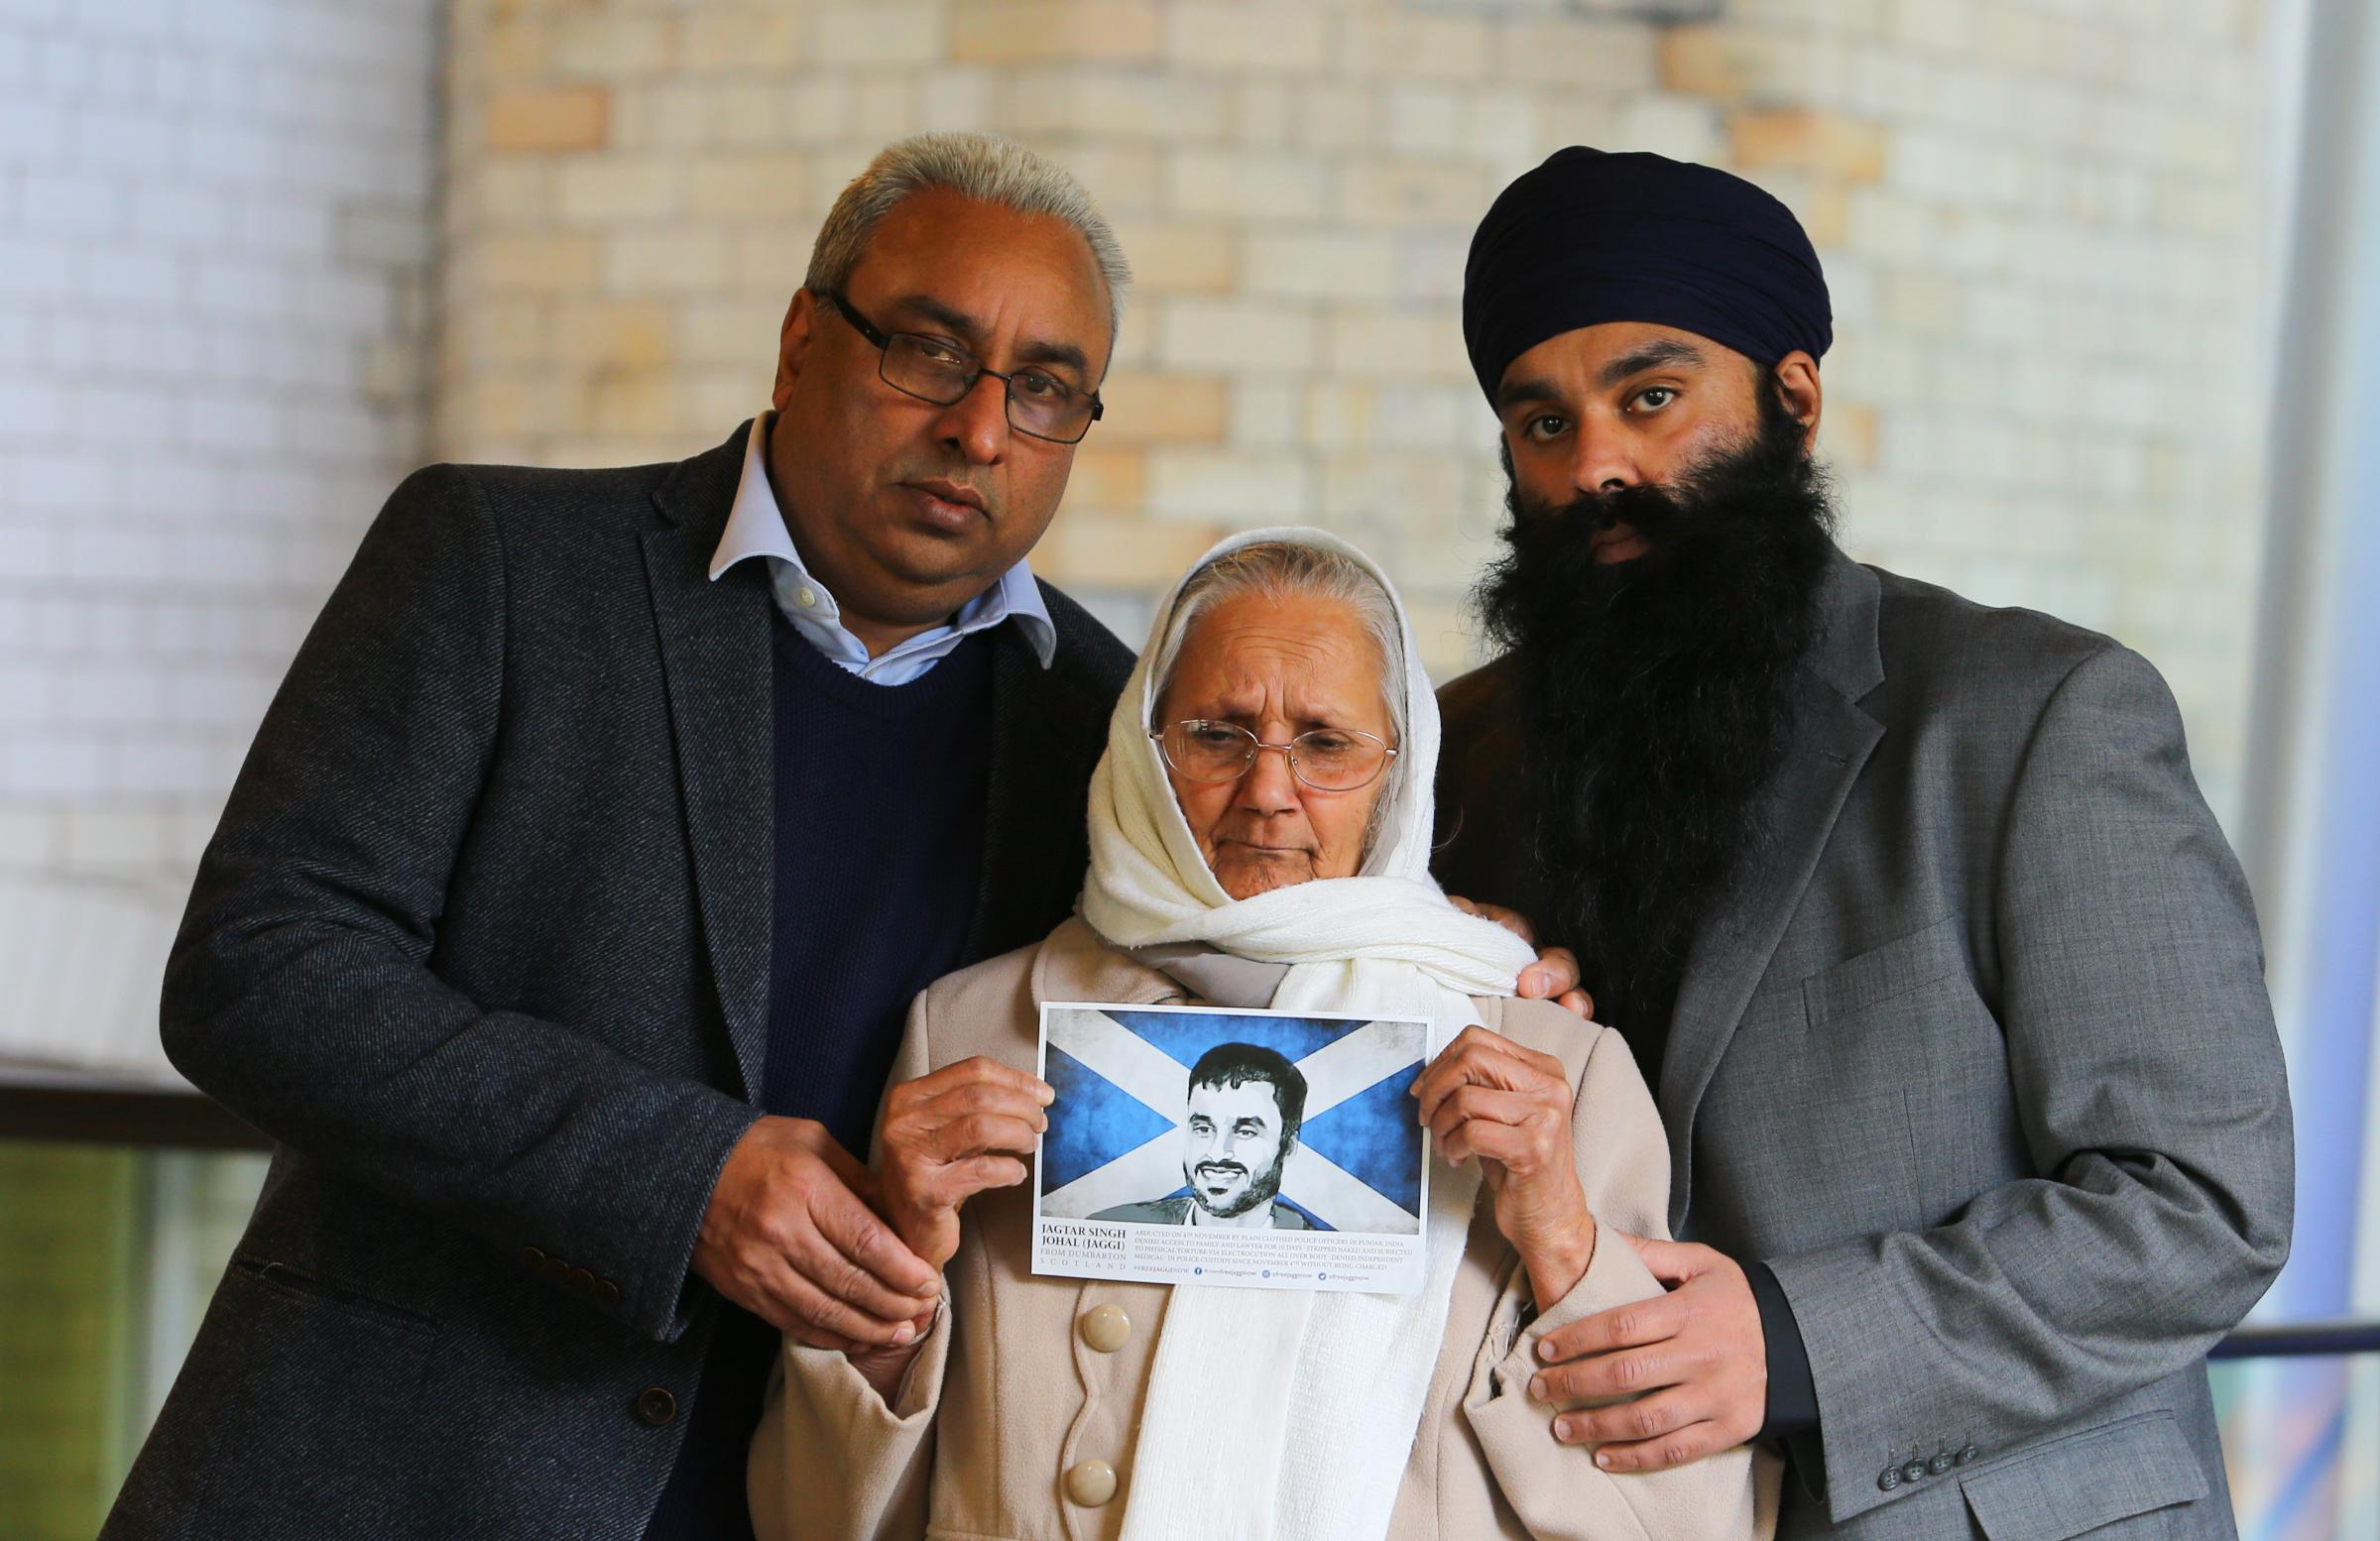 From left: Jagtar's father Jasbir Singh Johal, his grandmother Palbinder Kaur and his brother, Gurpreet Singh Johal. Photograph: Colin Mearns